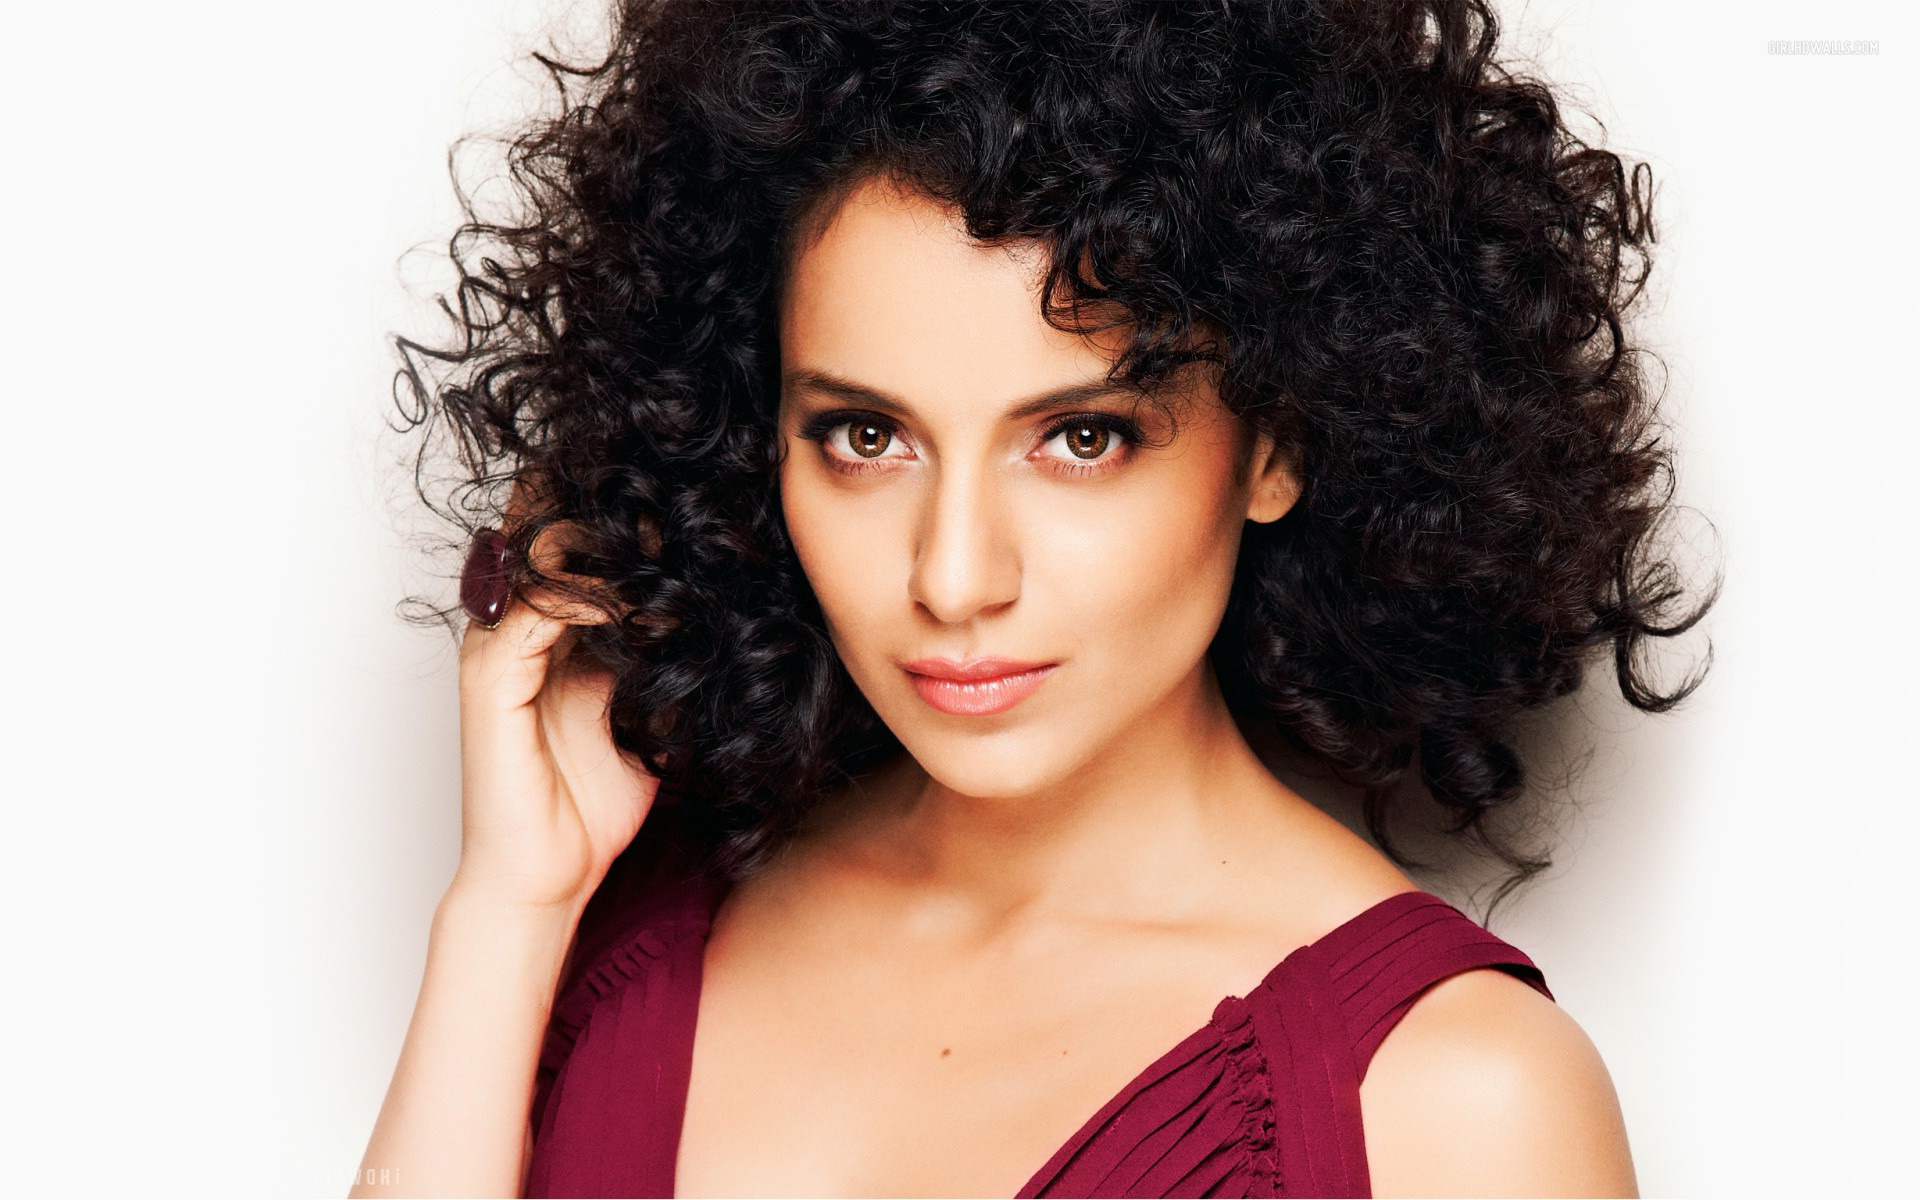 According to media reports emanating from India, one of the most prominent stars of the Bollywood Film Industry, Kangana Ranaut has sent a legal warning to ...